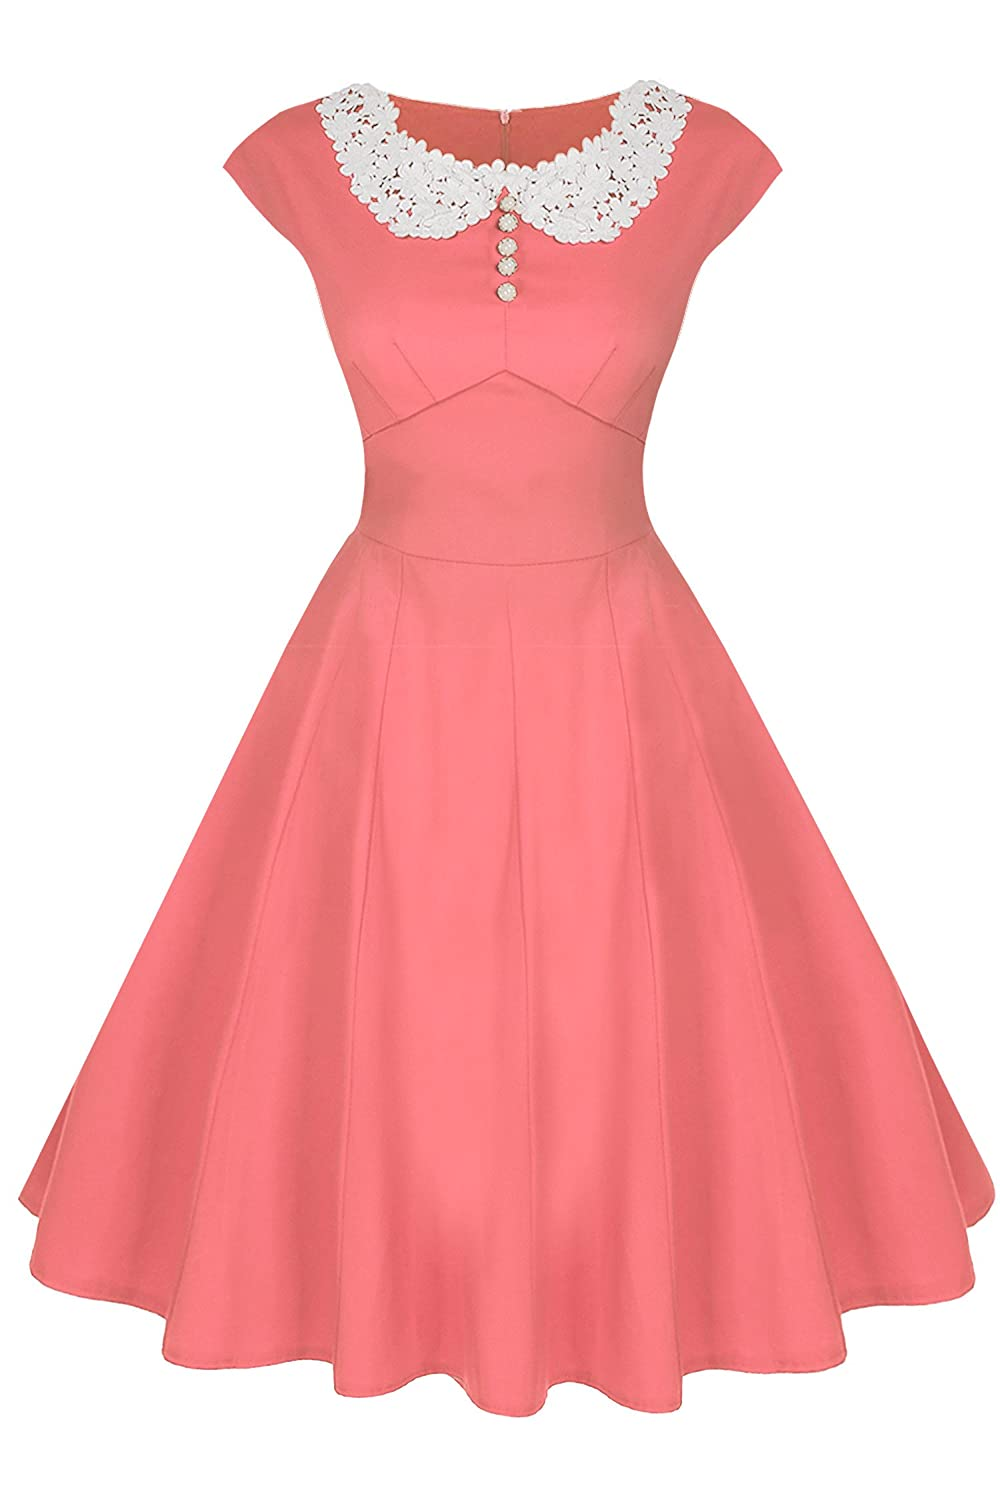 Vintage 50s Dresses: Best 1950s Dress Styles Audrey Hepburn Style 1940s Rockabilly Evening Dress $32.99 AT vintagedancer.com